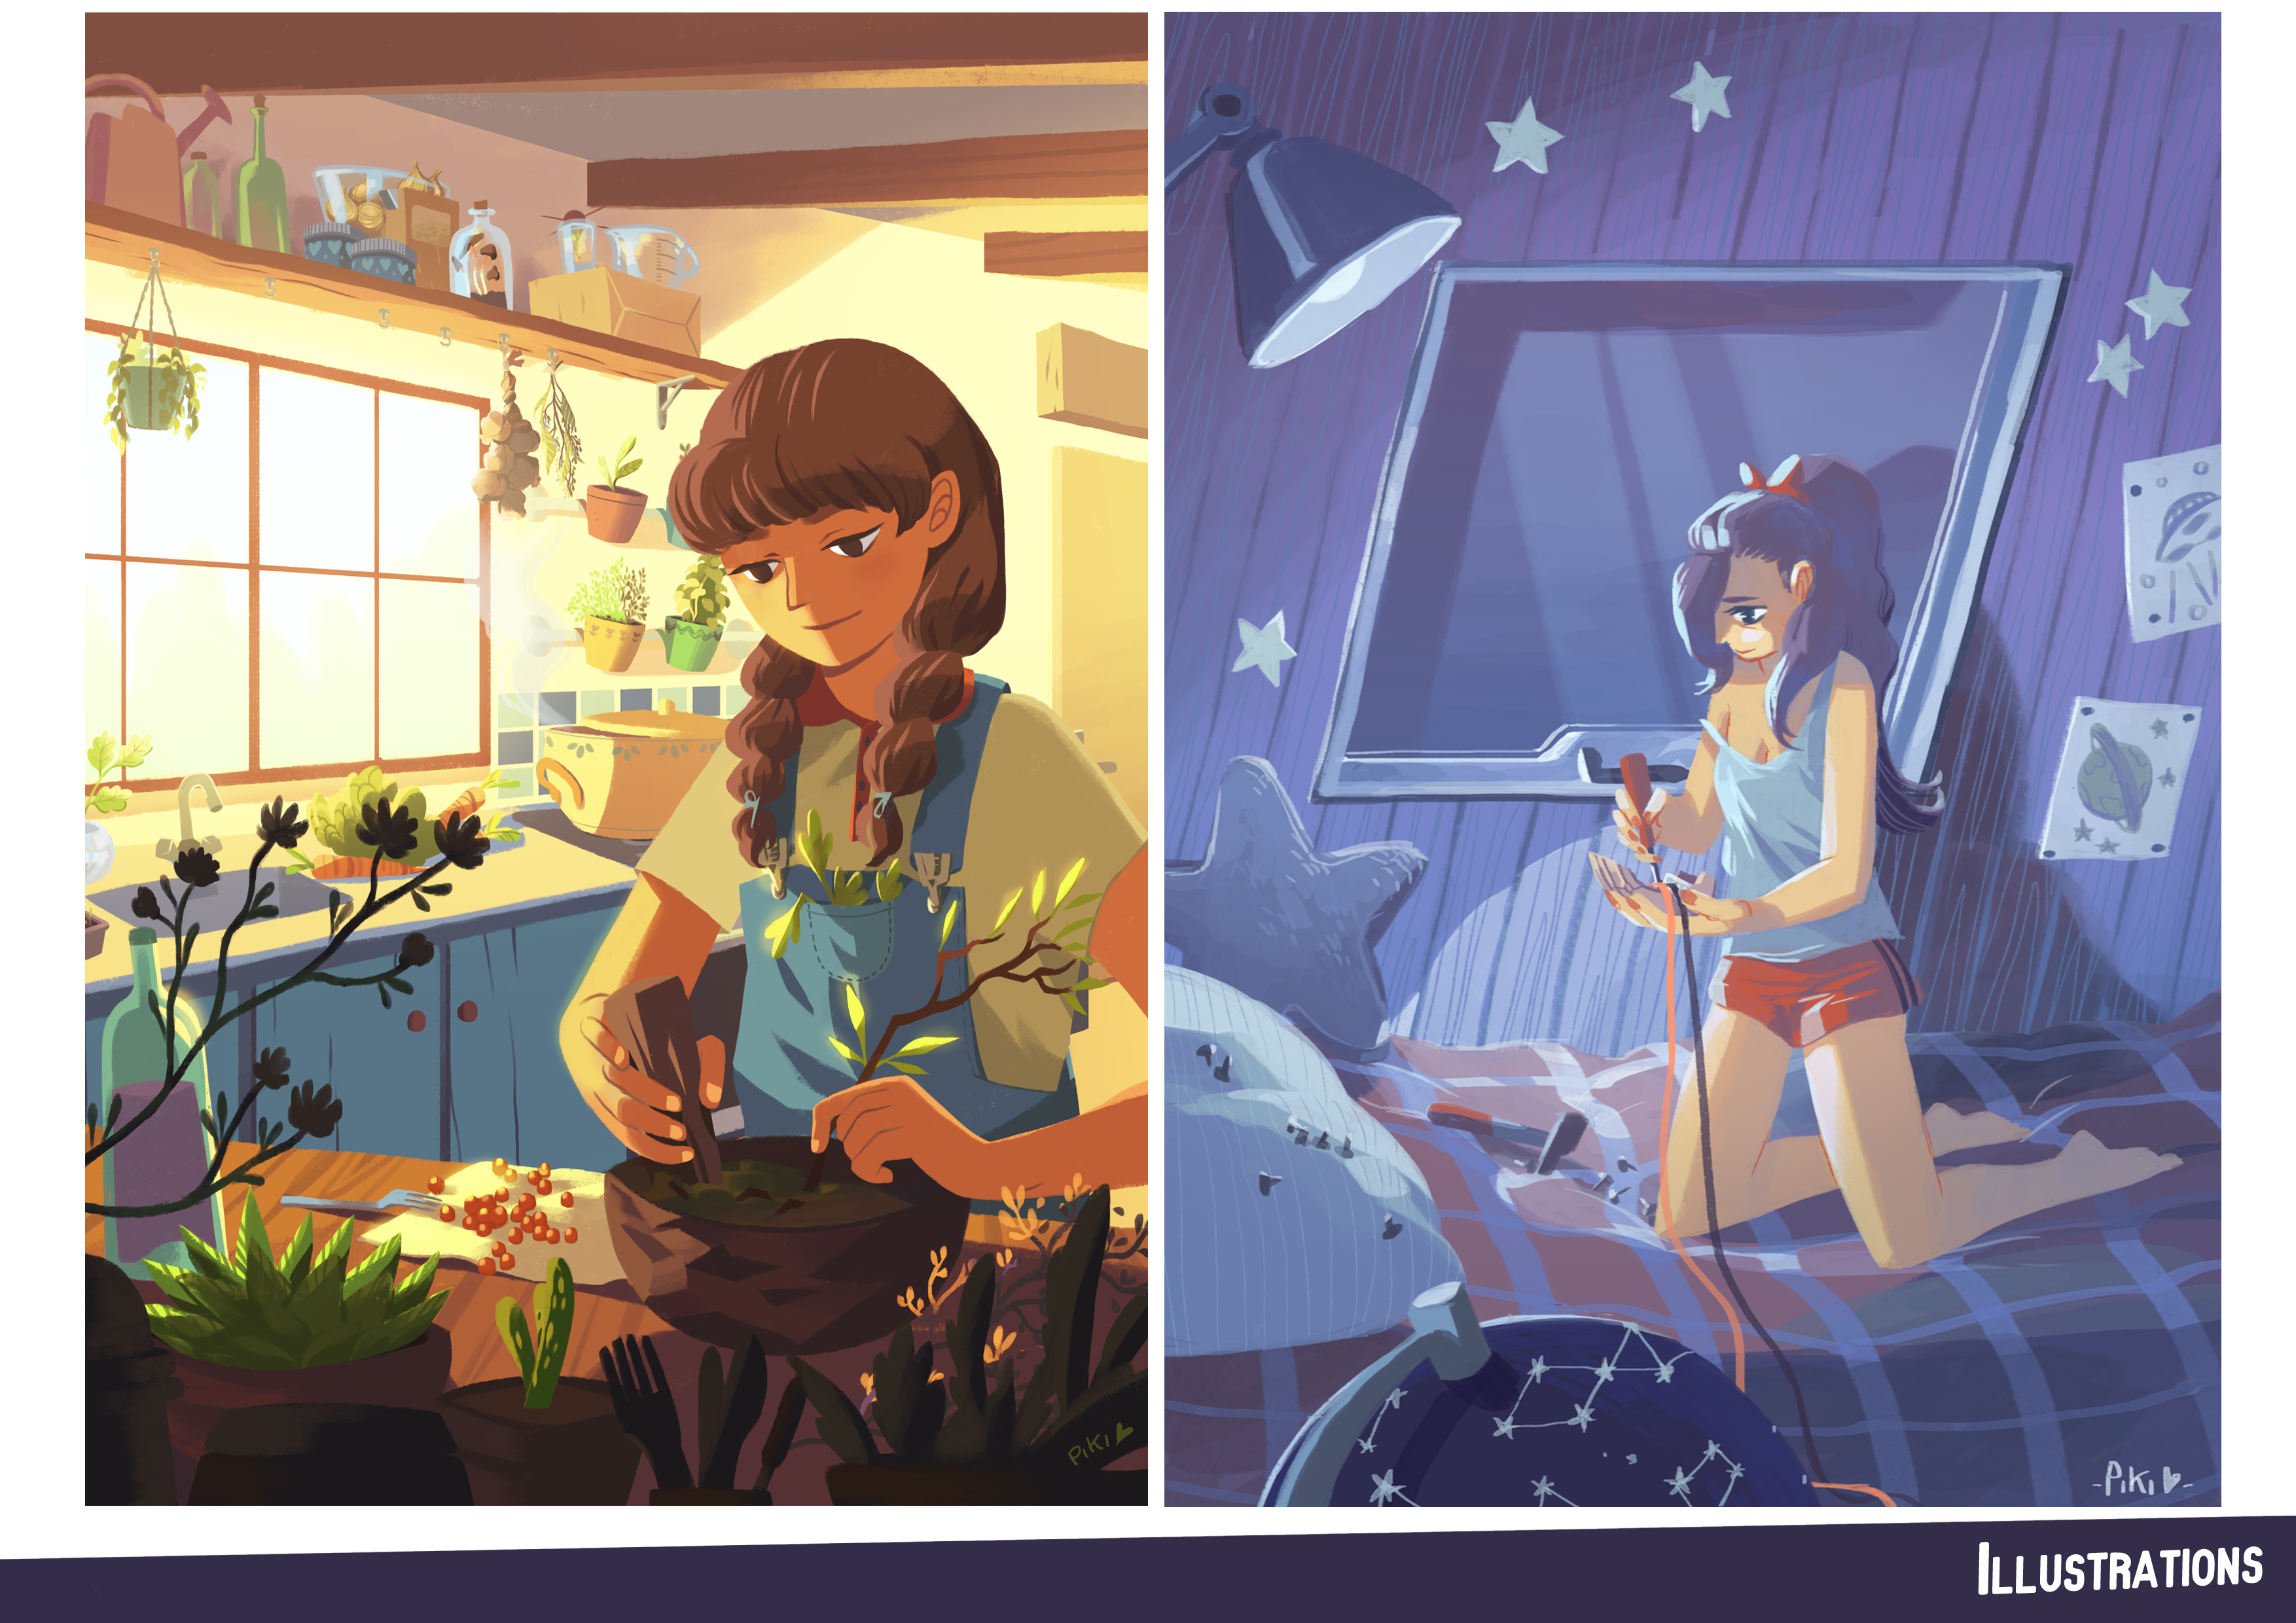 Personal work : various illustrations.